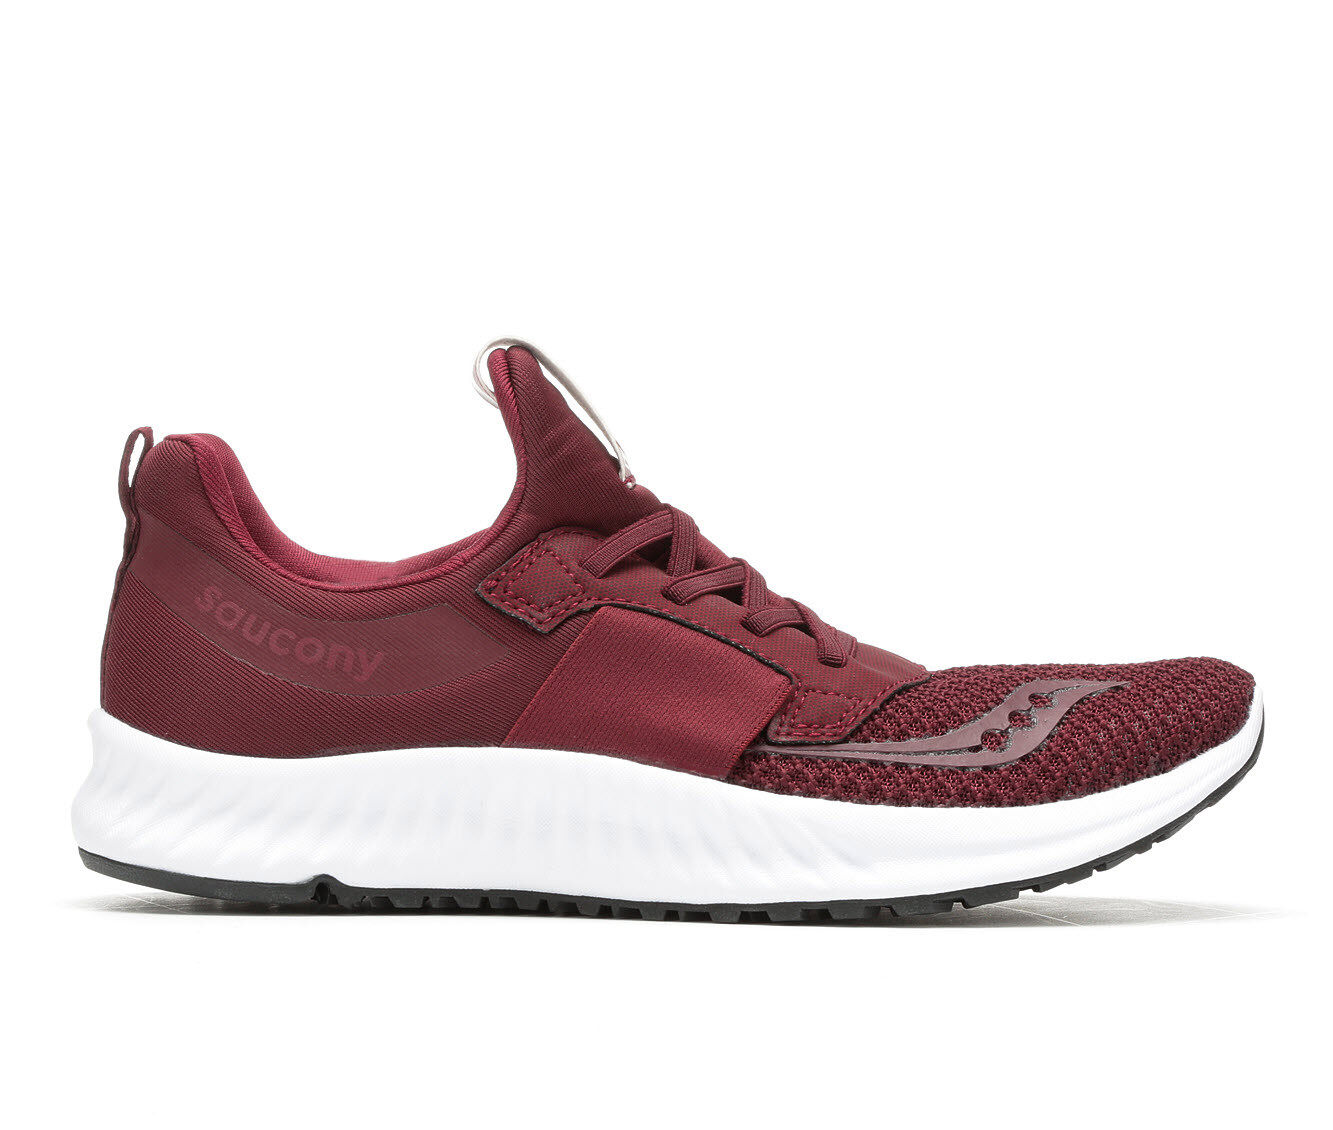 where can i order Women's Saucony Breeze Slip-On Sneakers free shipping amazing price fake sale online W6qvfaRrv